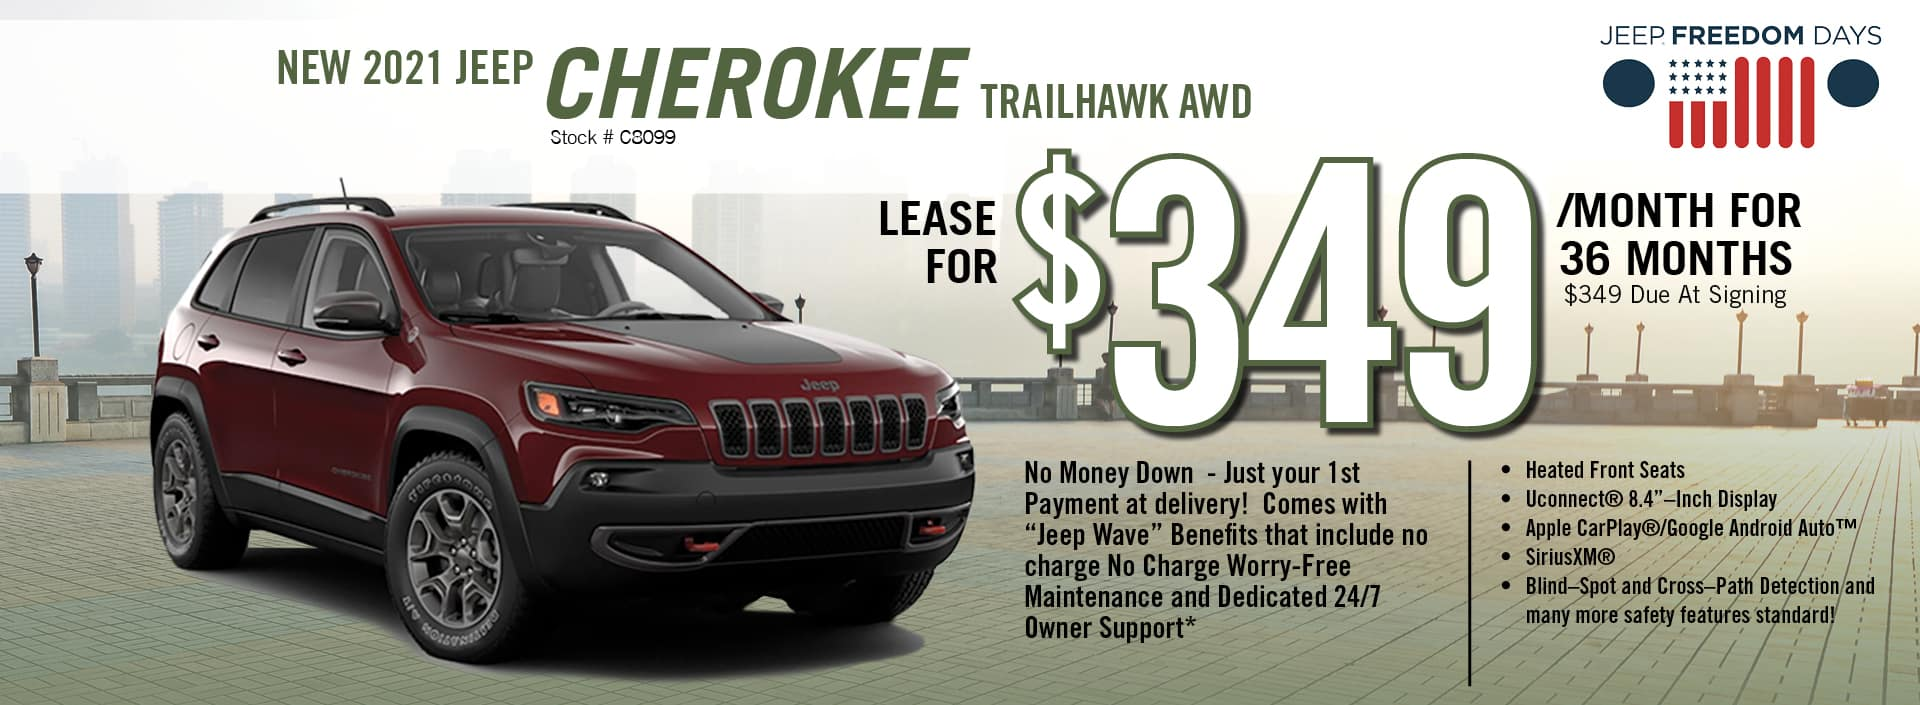 2021 Jeep Cherokee Lease Offer | Barre, VT